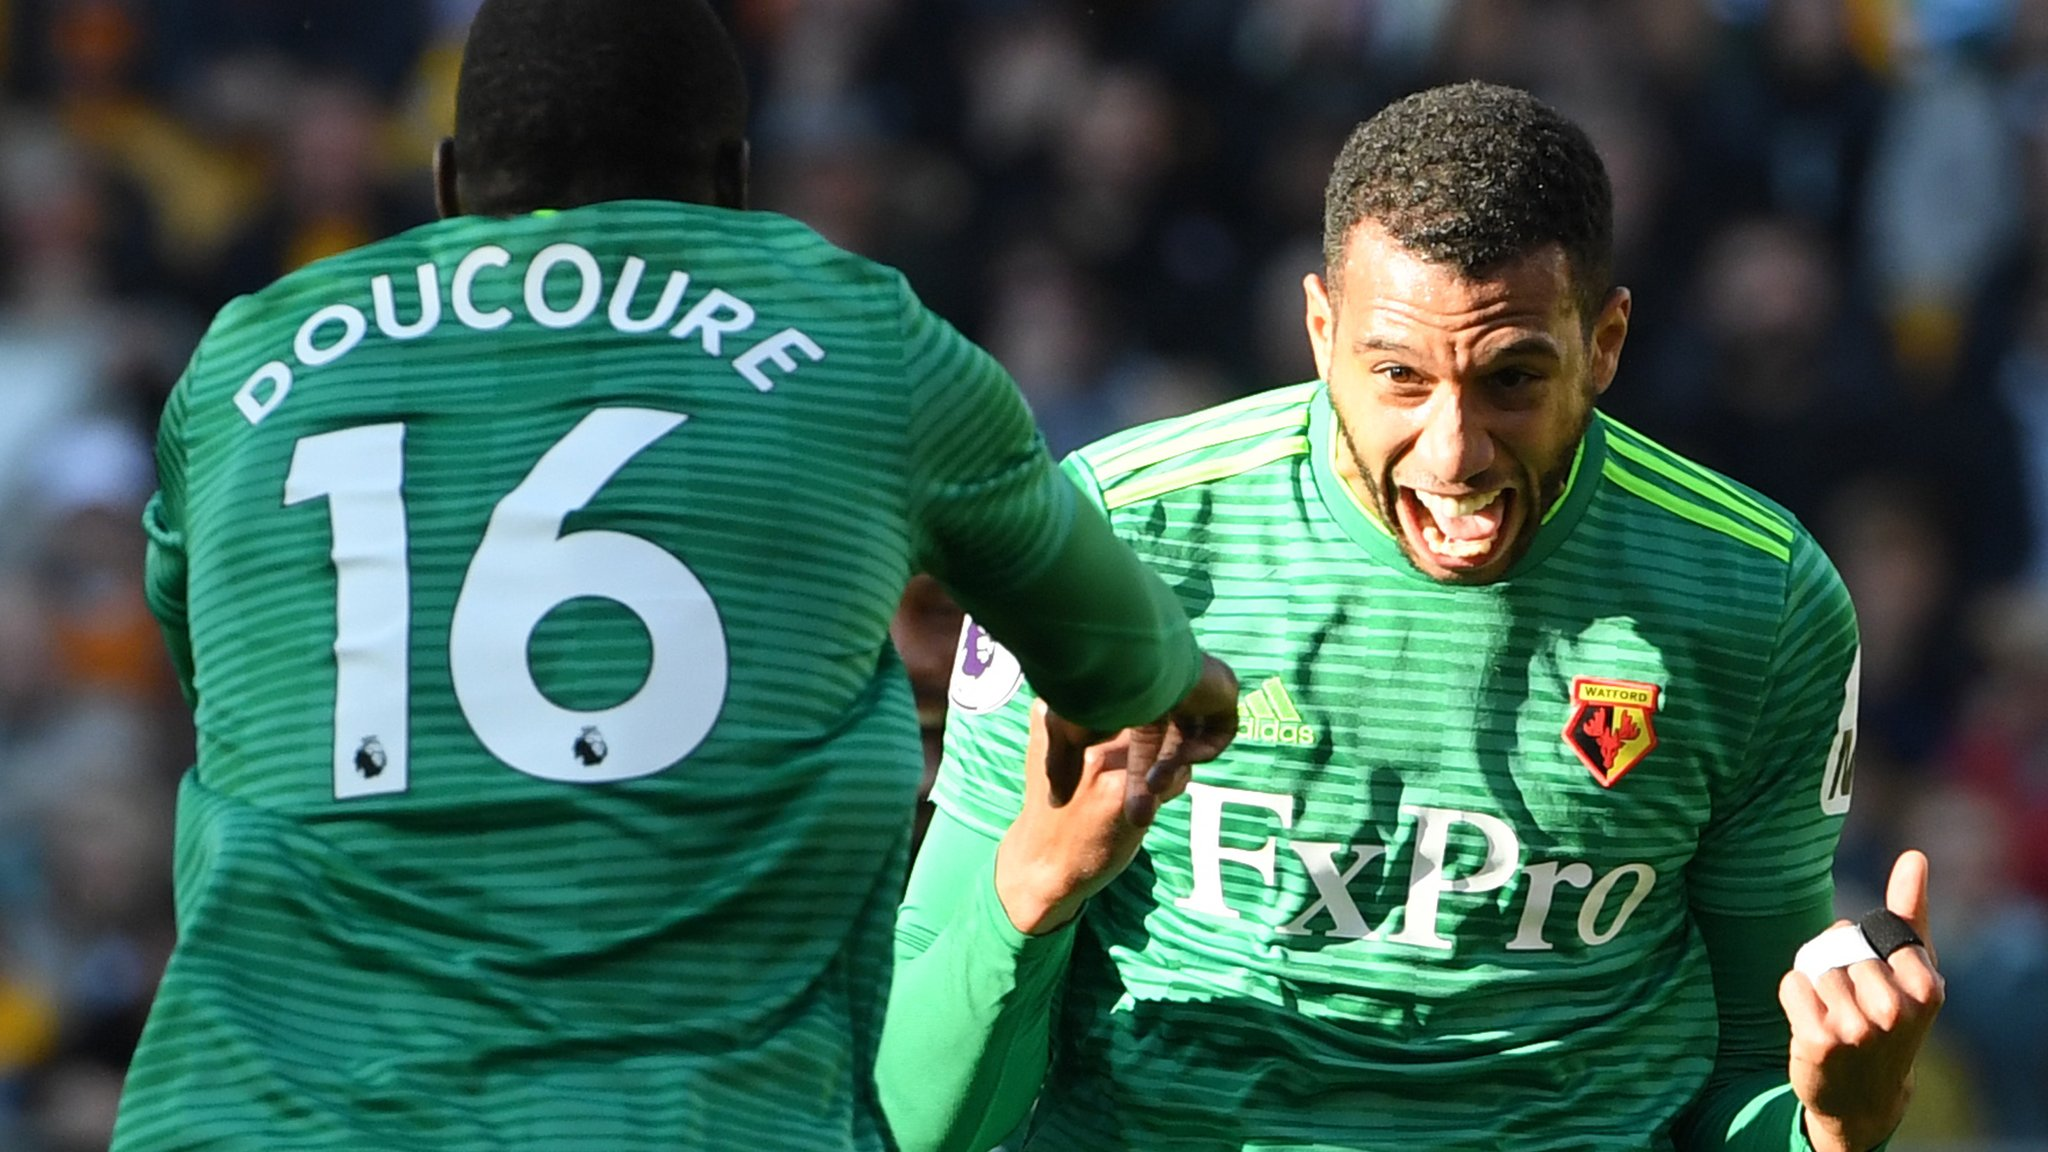 Wolverhampton Wanderers 0-2 Watford: Capoue and Pereyra seal Hornets win